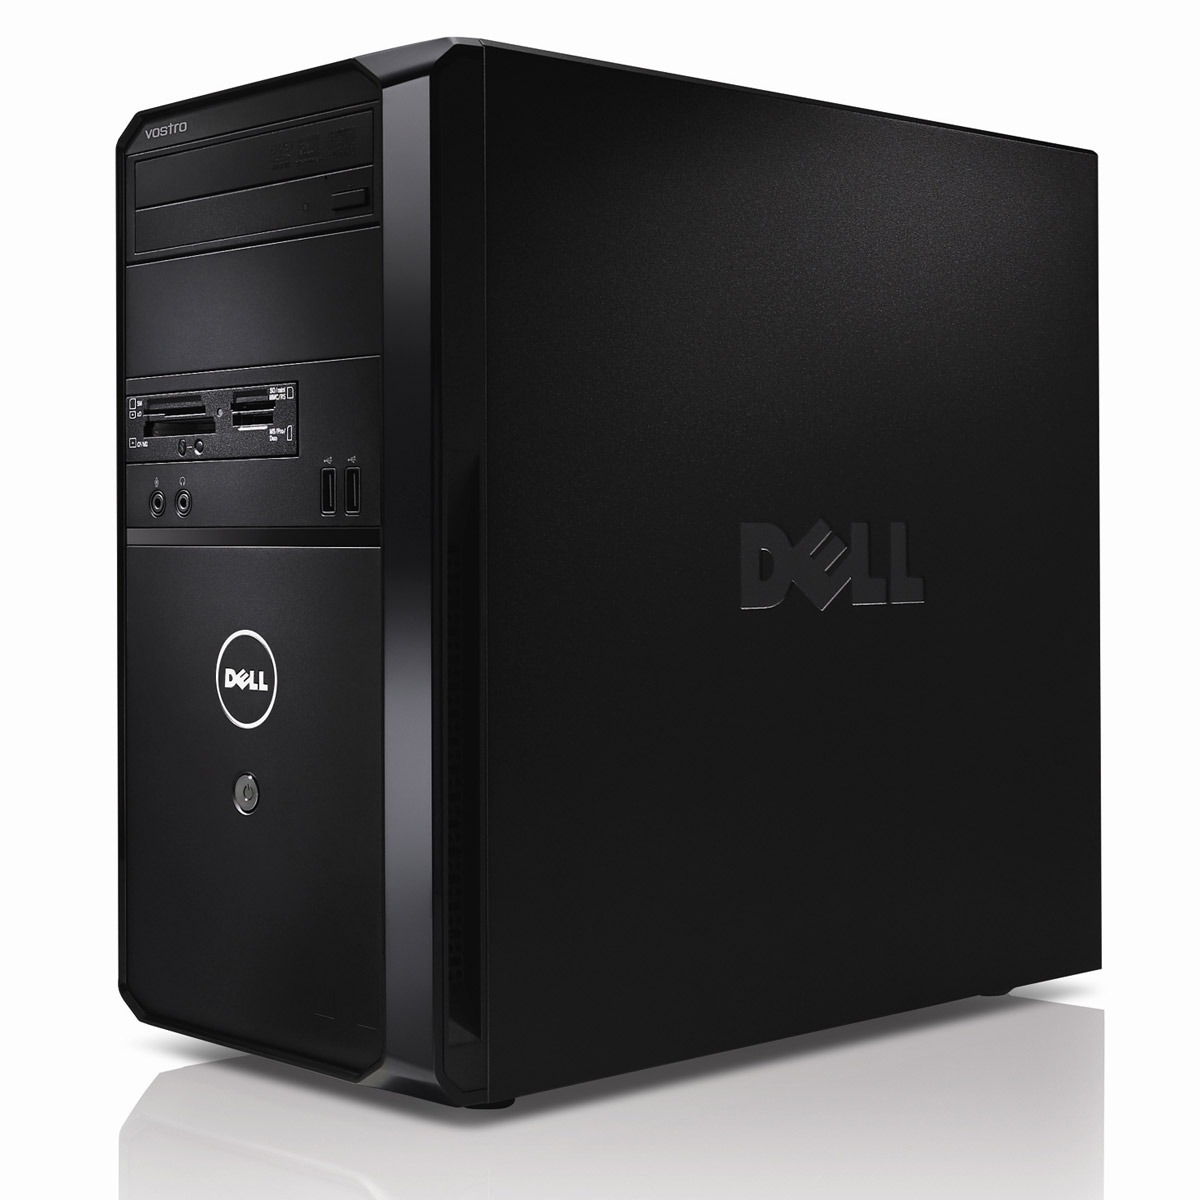 dell vostro 230 mt pc de bureau dell sur ldlc. Black Bedroom Furniture Sets. Home Design Ideas